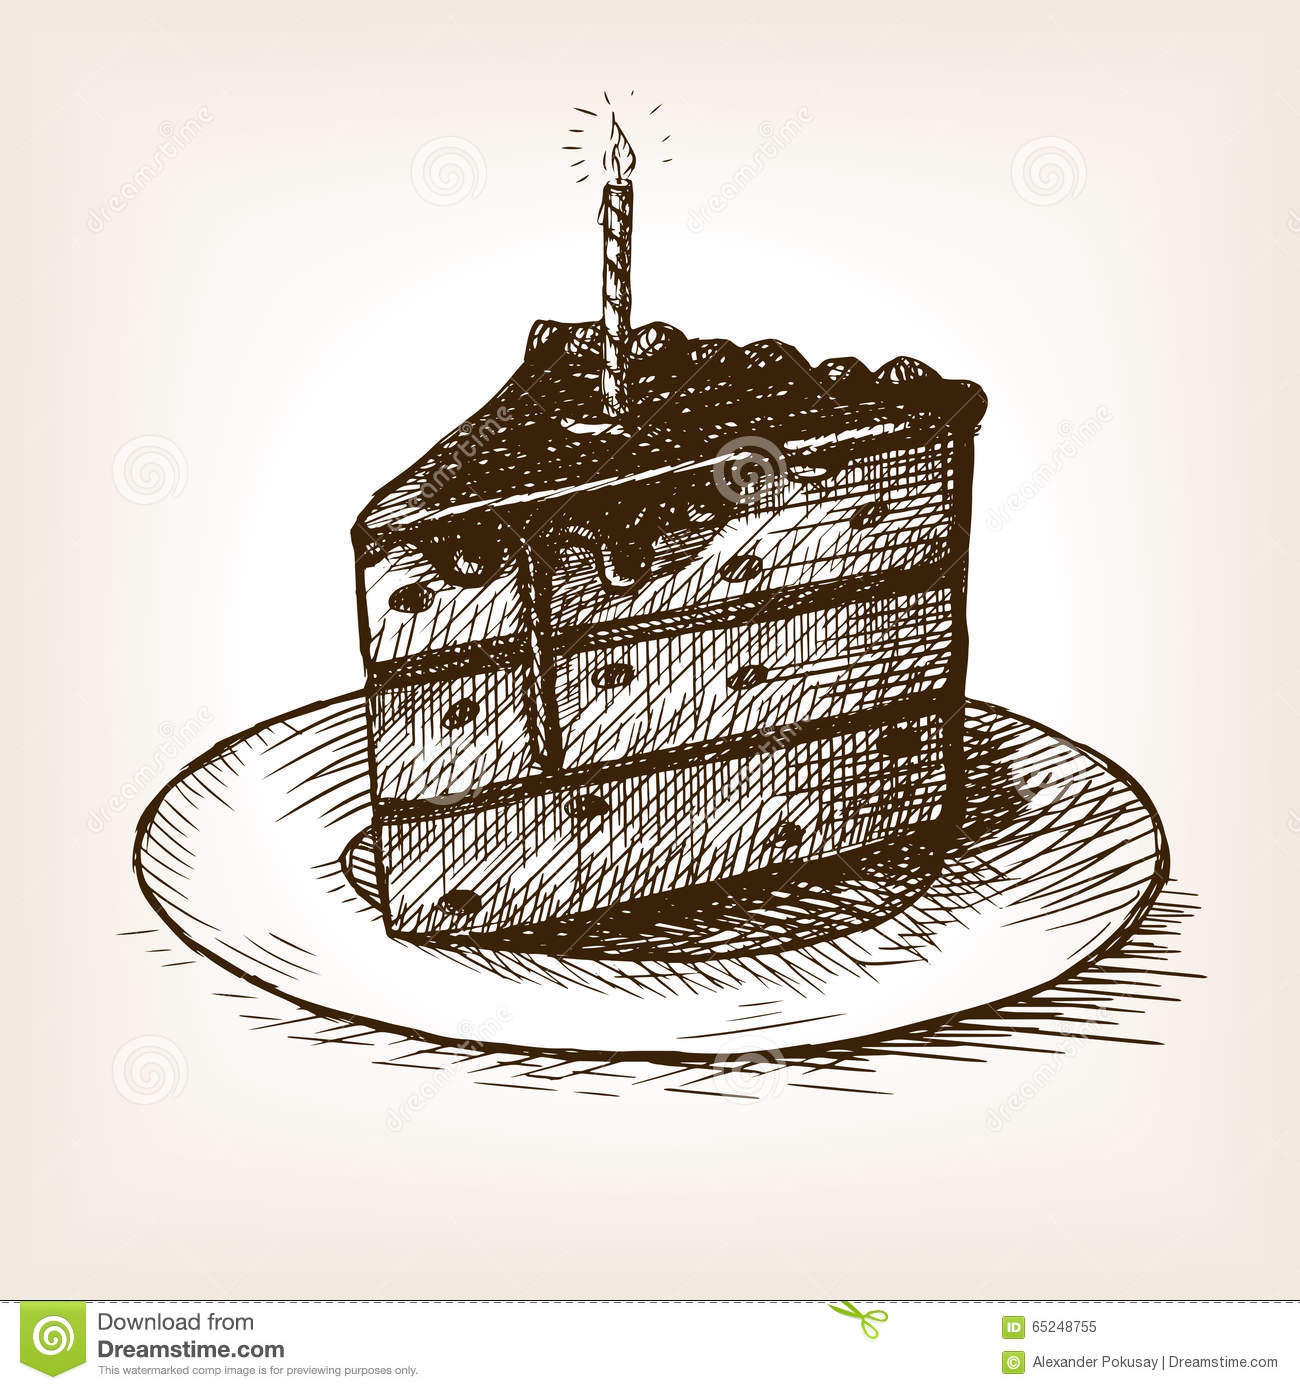 Cake Slice Drawing at GetDrawings | Free download